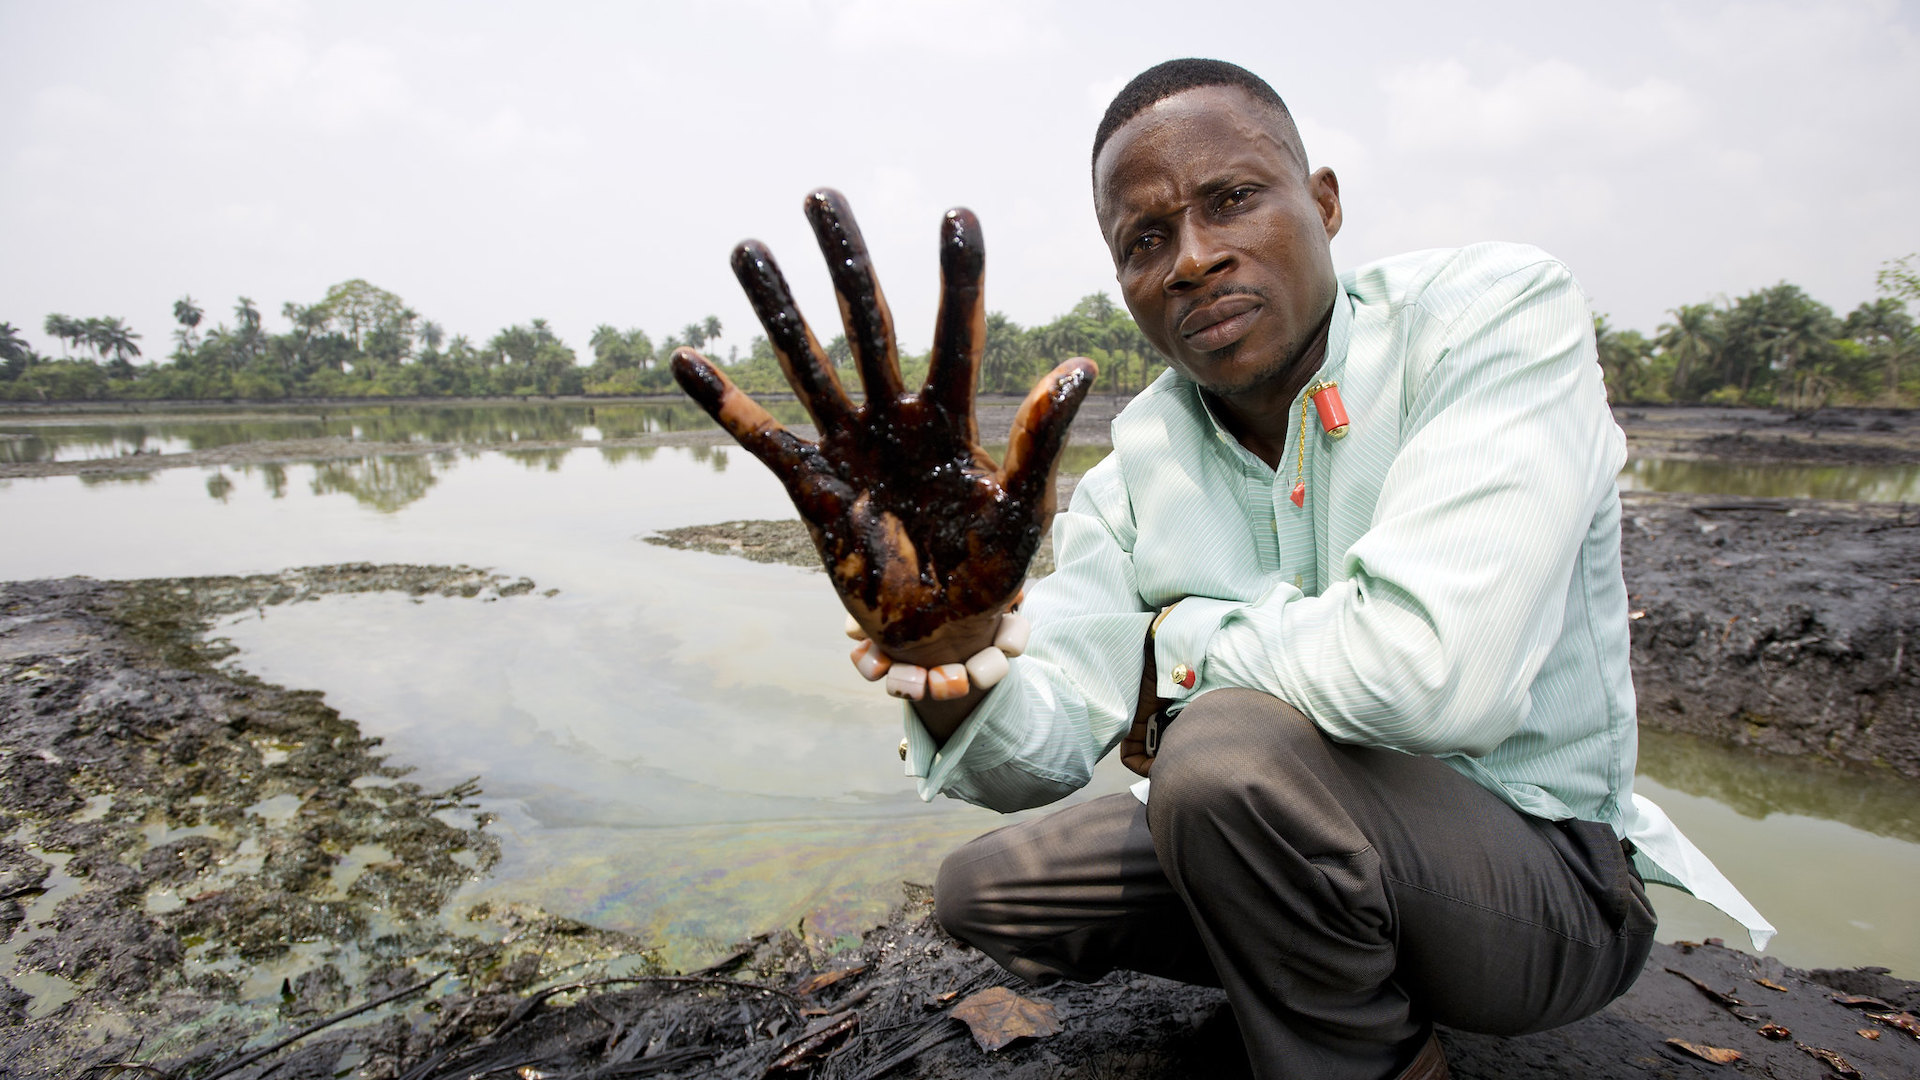 Oil spill in the Niger Delta in Africa